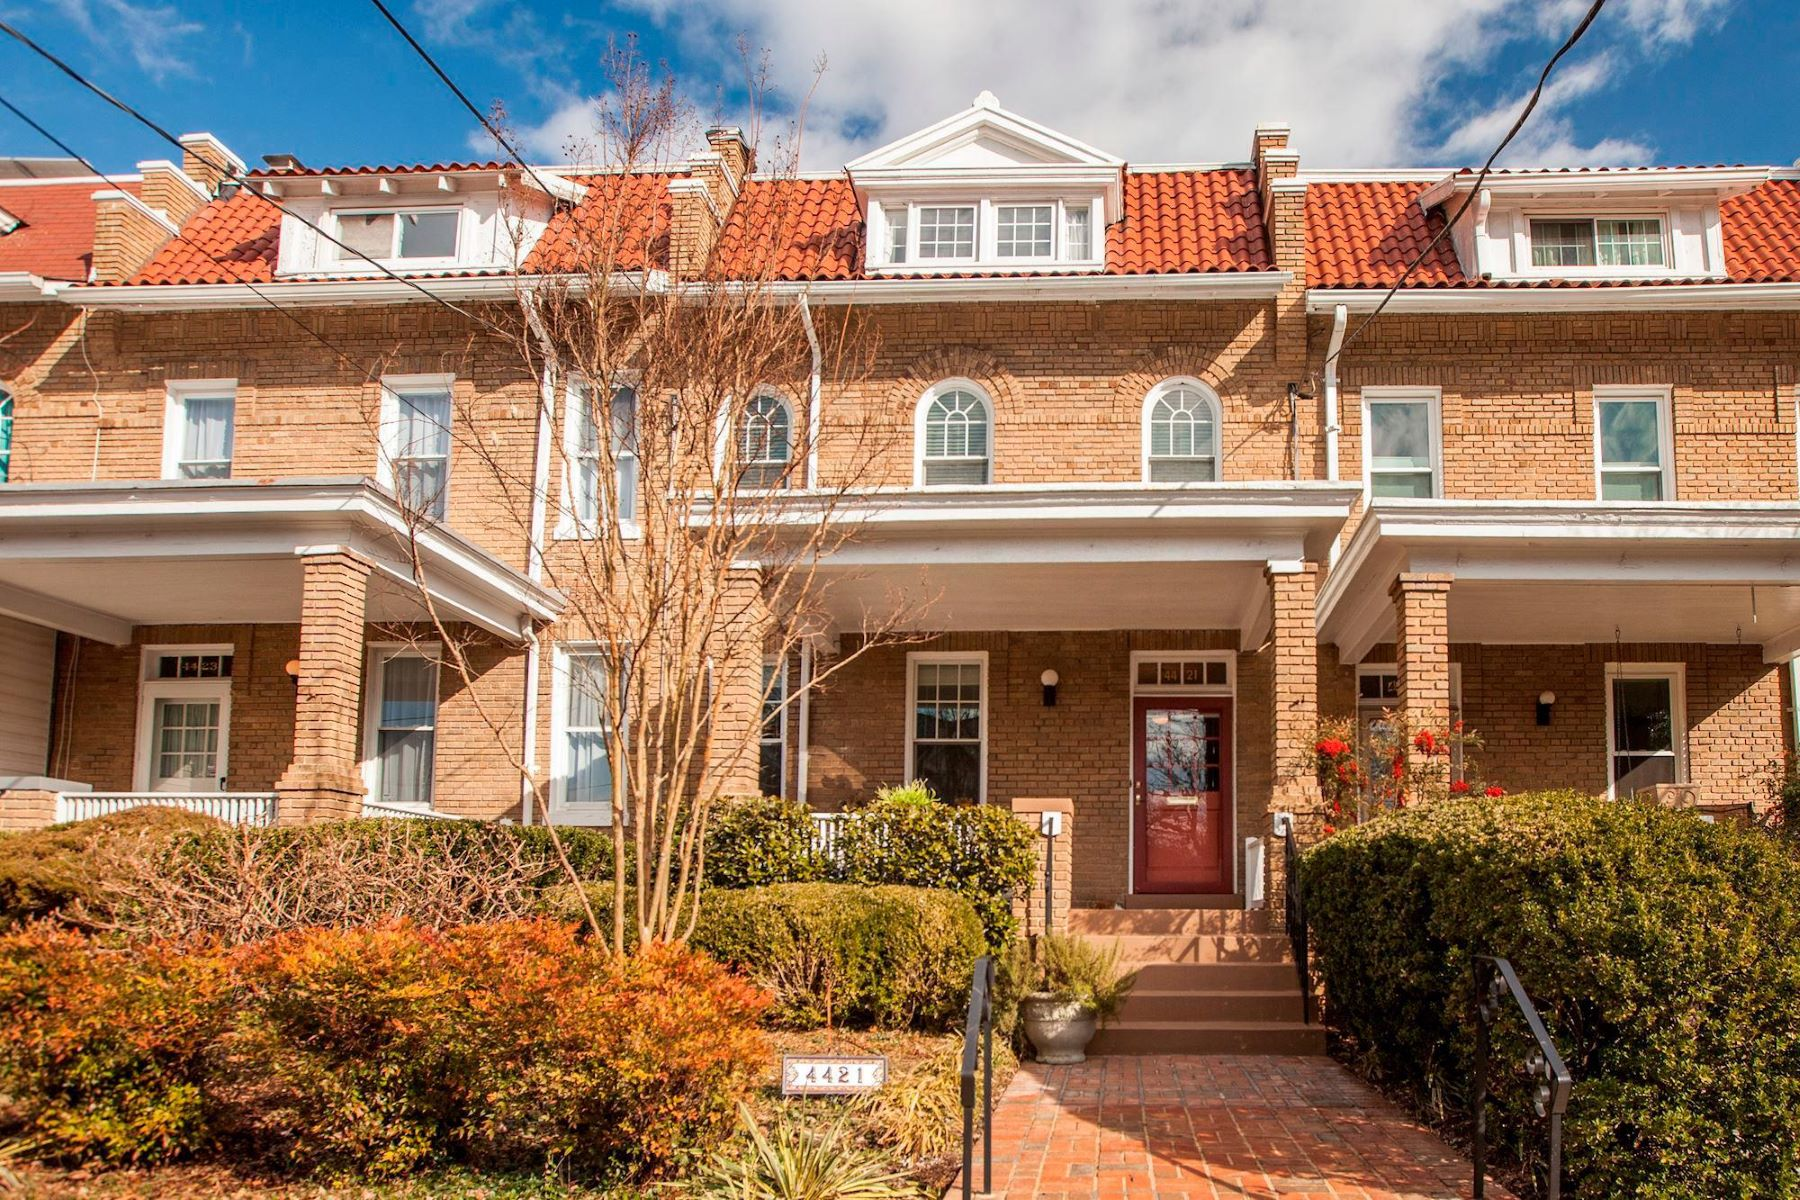 Townhouse for Sale at 4421 17th St NW 4421 17th St NW Washington, District Of Columbia 20011 United States